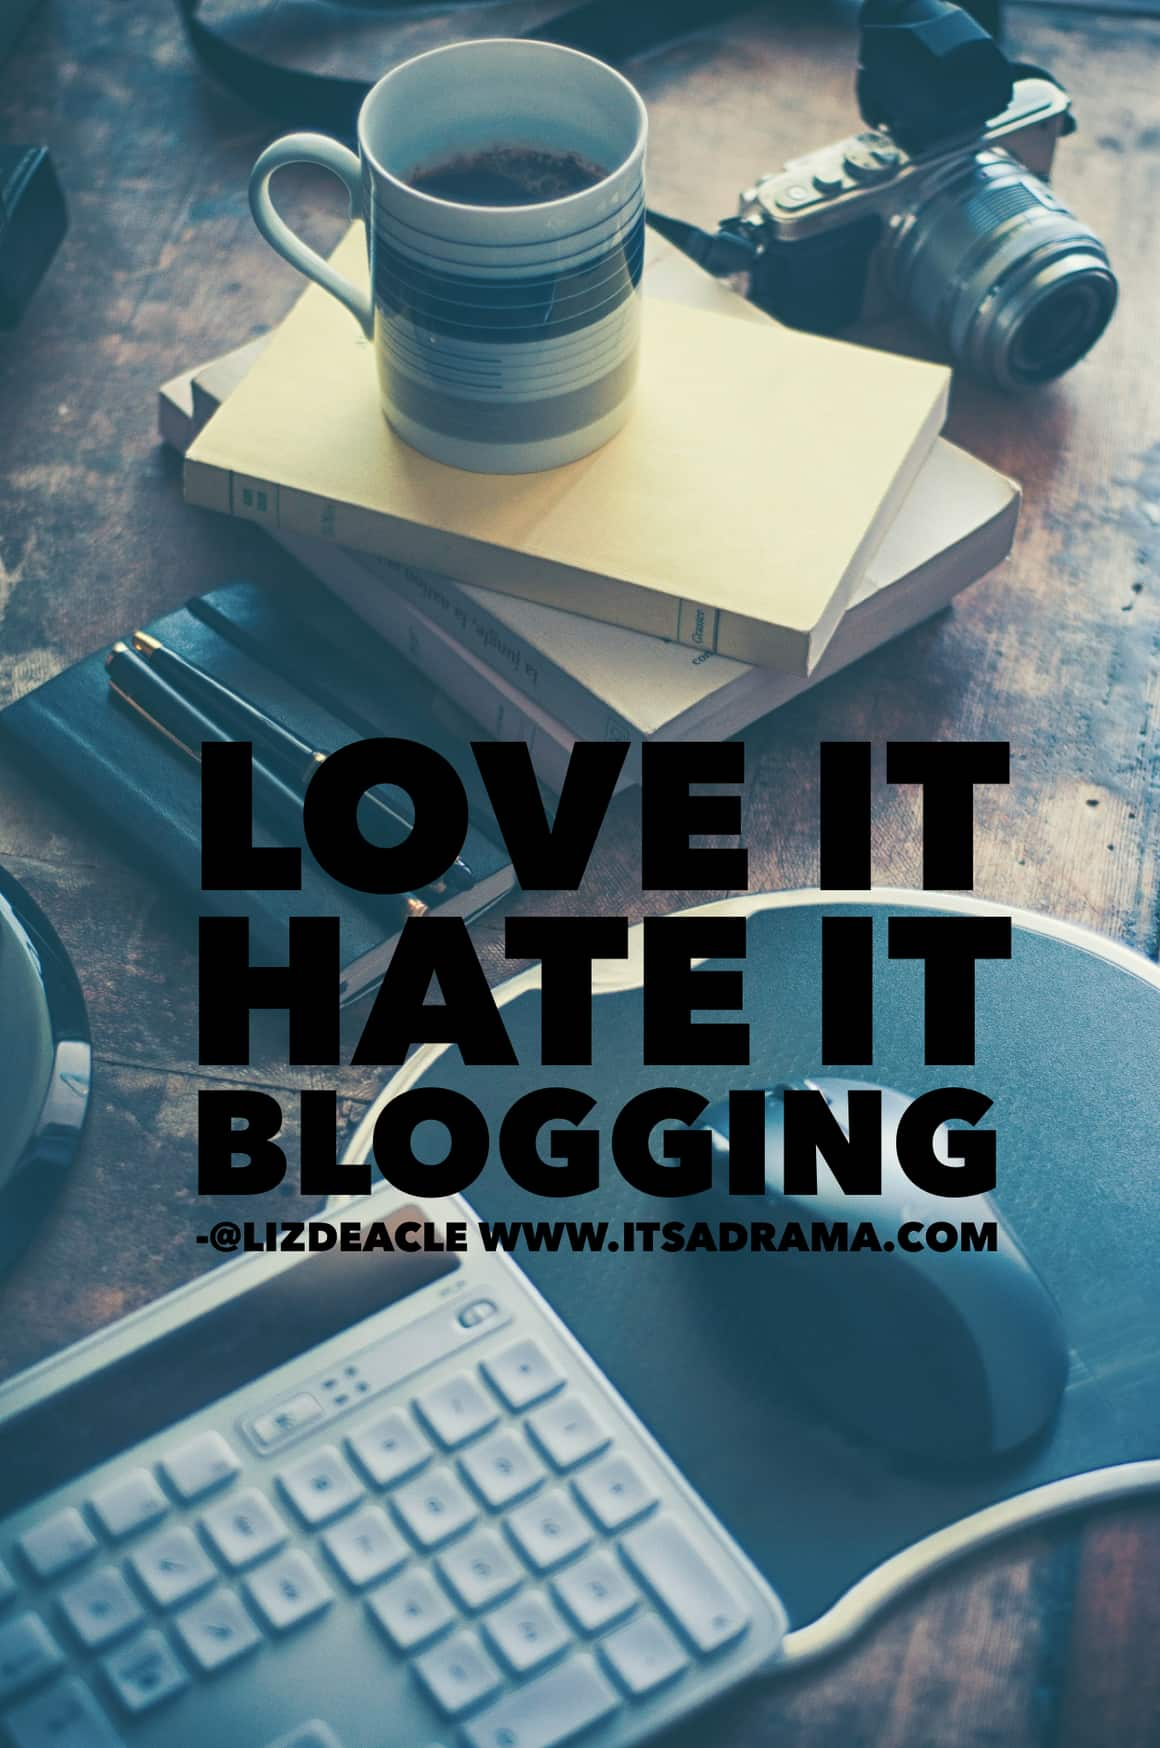 A post about the love hate relationship with blogging